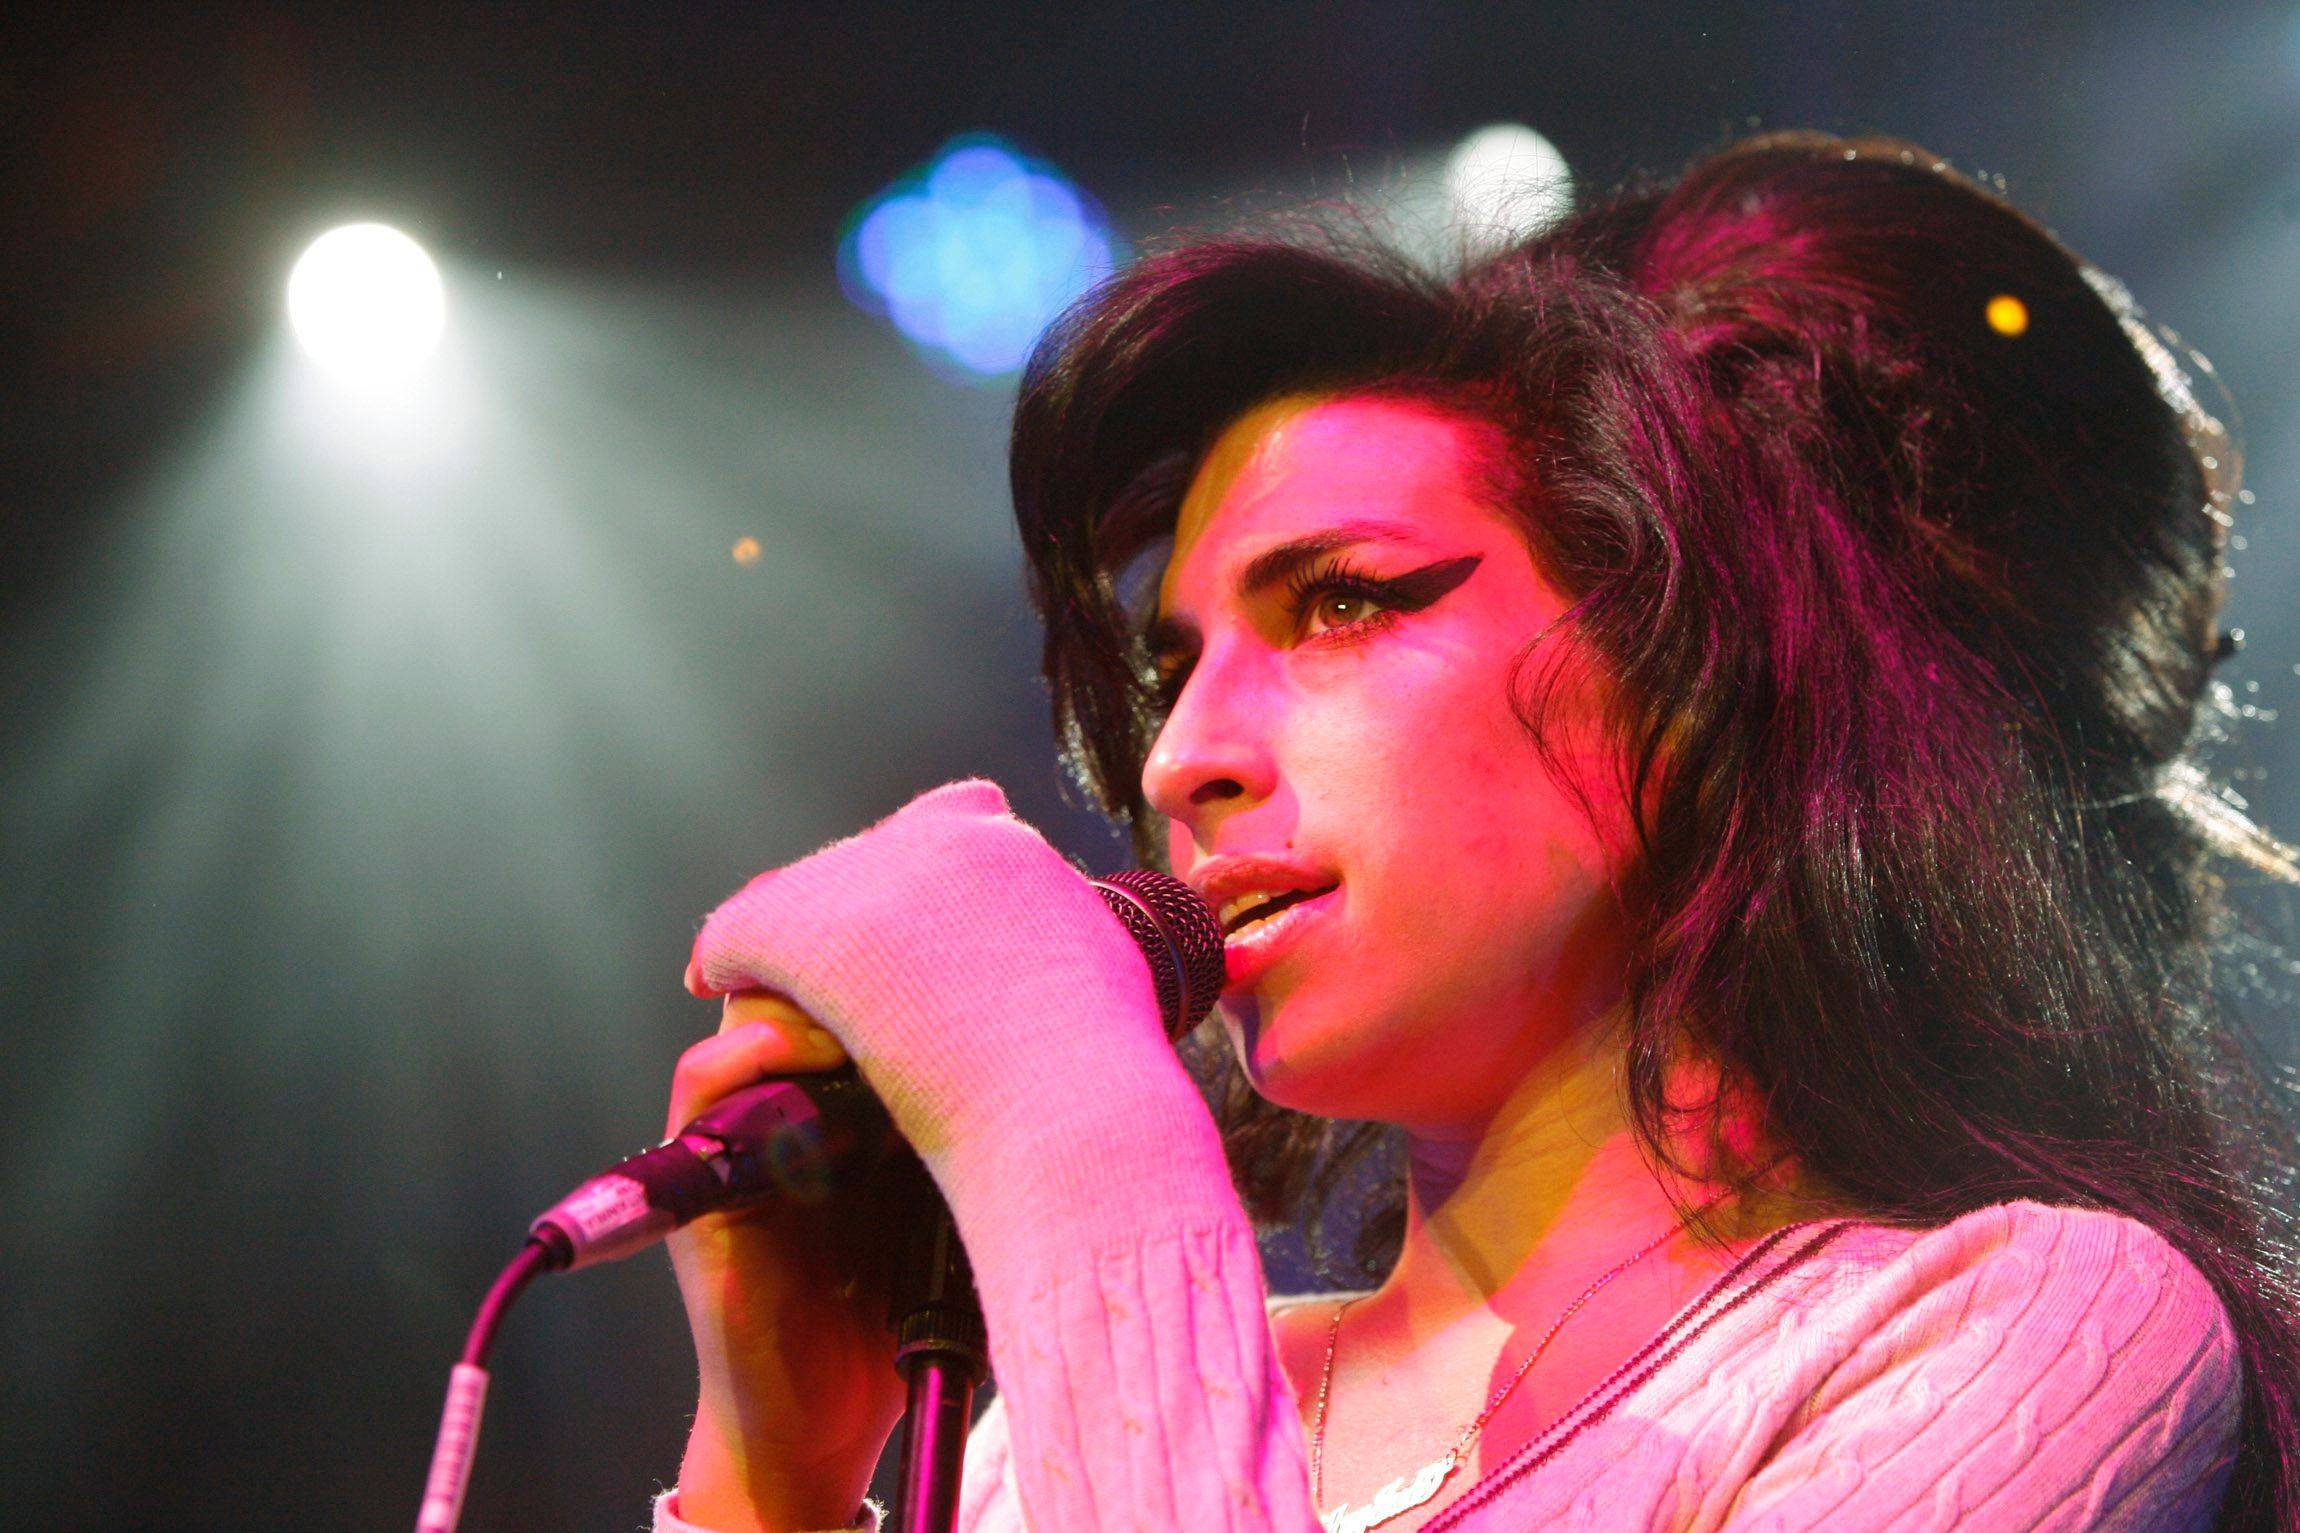 British singer Amy Winehouse performs during a concert at the Volkshaus in Zurich, Switzerland in 2007. Amy Winehouse, the beehived soul-jazz diva whose self-destructive habits overshadowed a distinctive musical talent, was found dead Saturday in her London home, police said. She was 27.